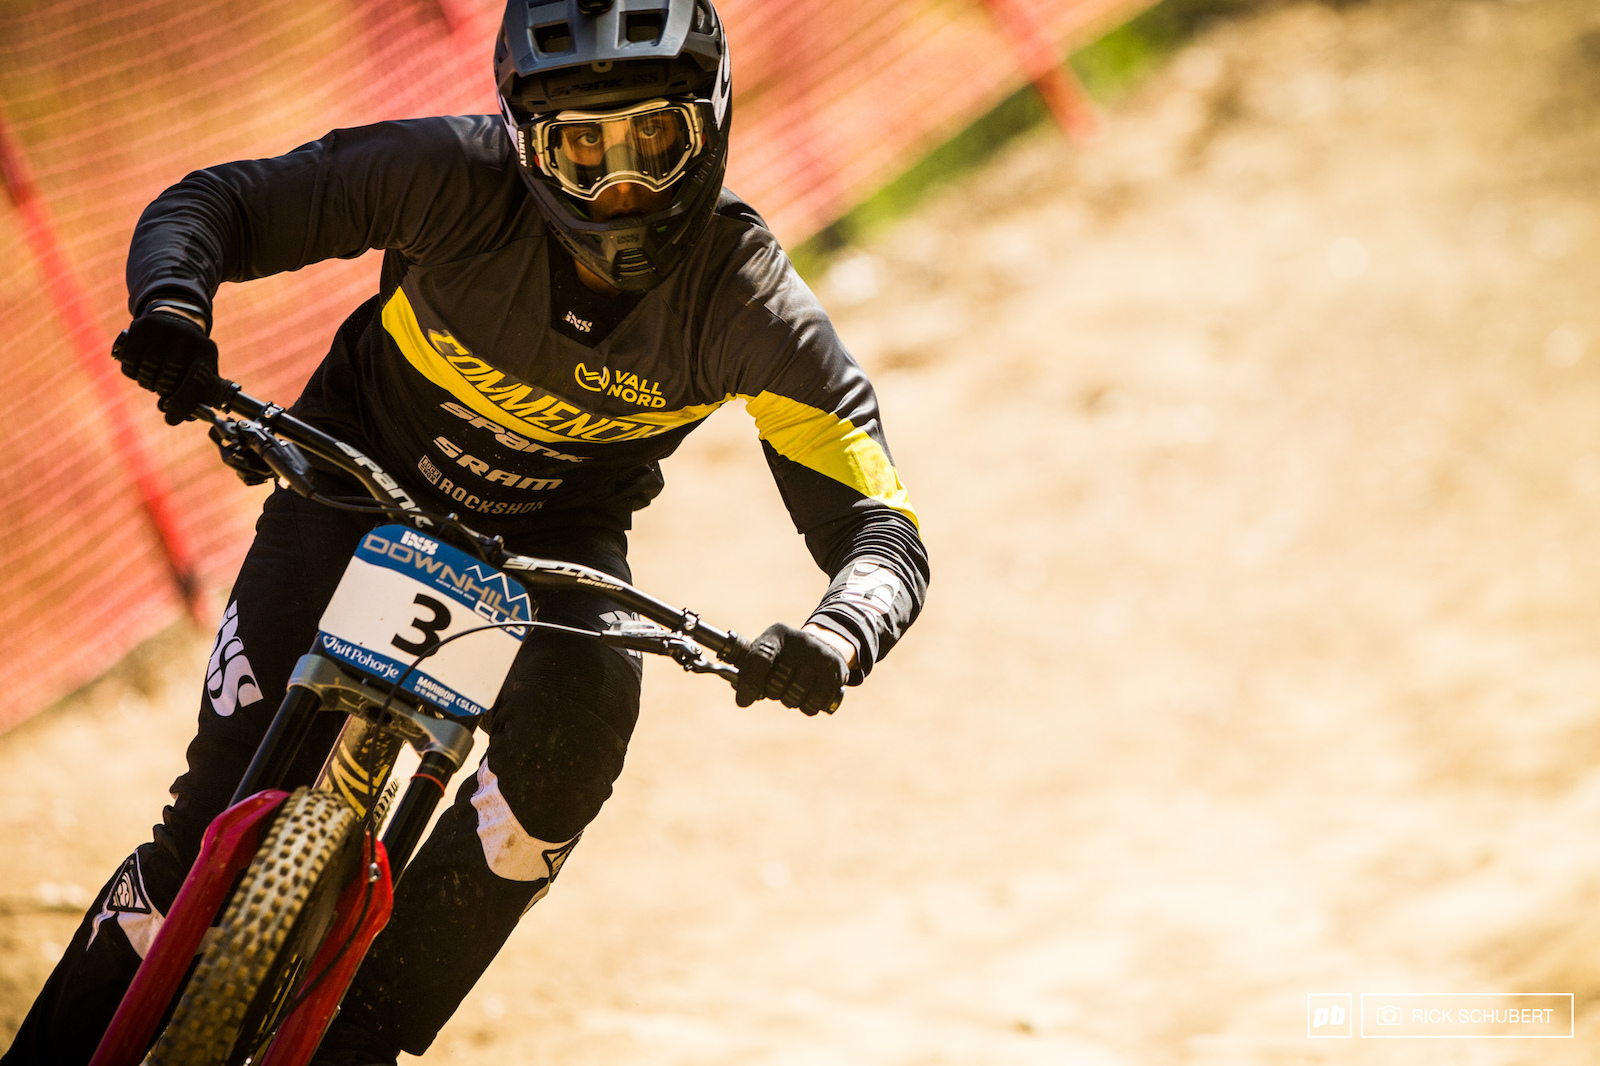 Commencal sent out the whole team to race in Maribor